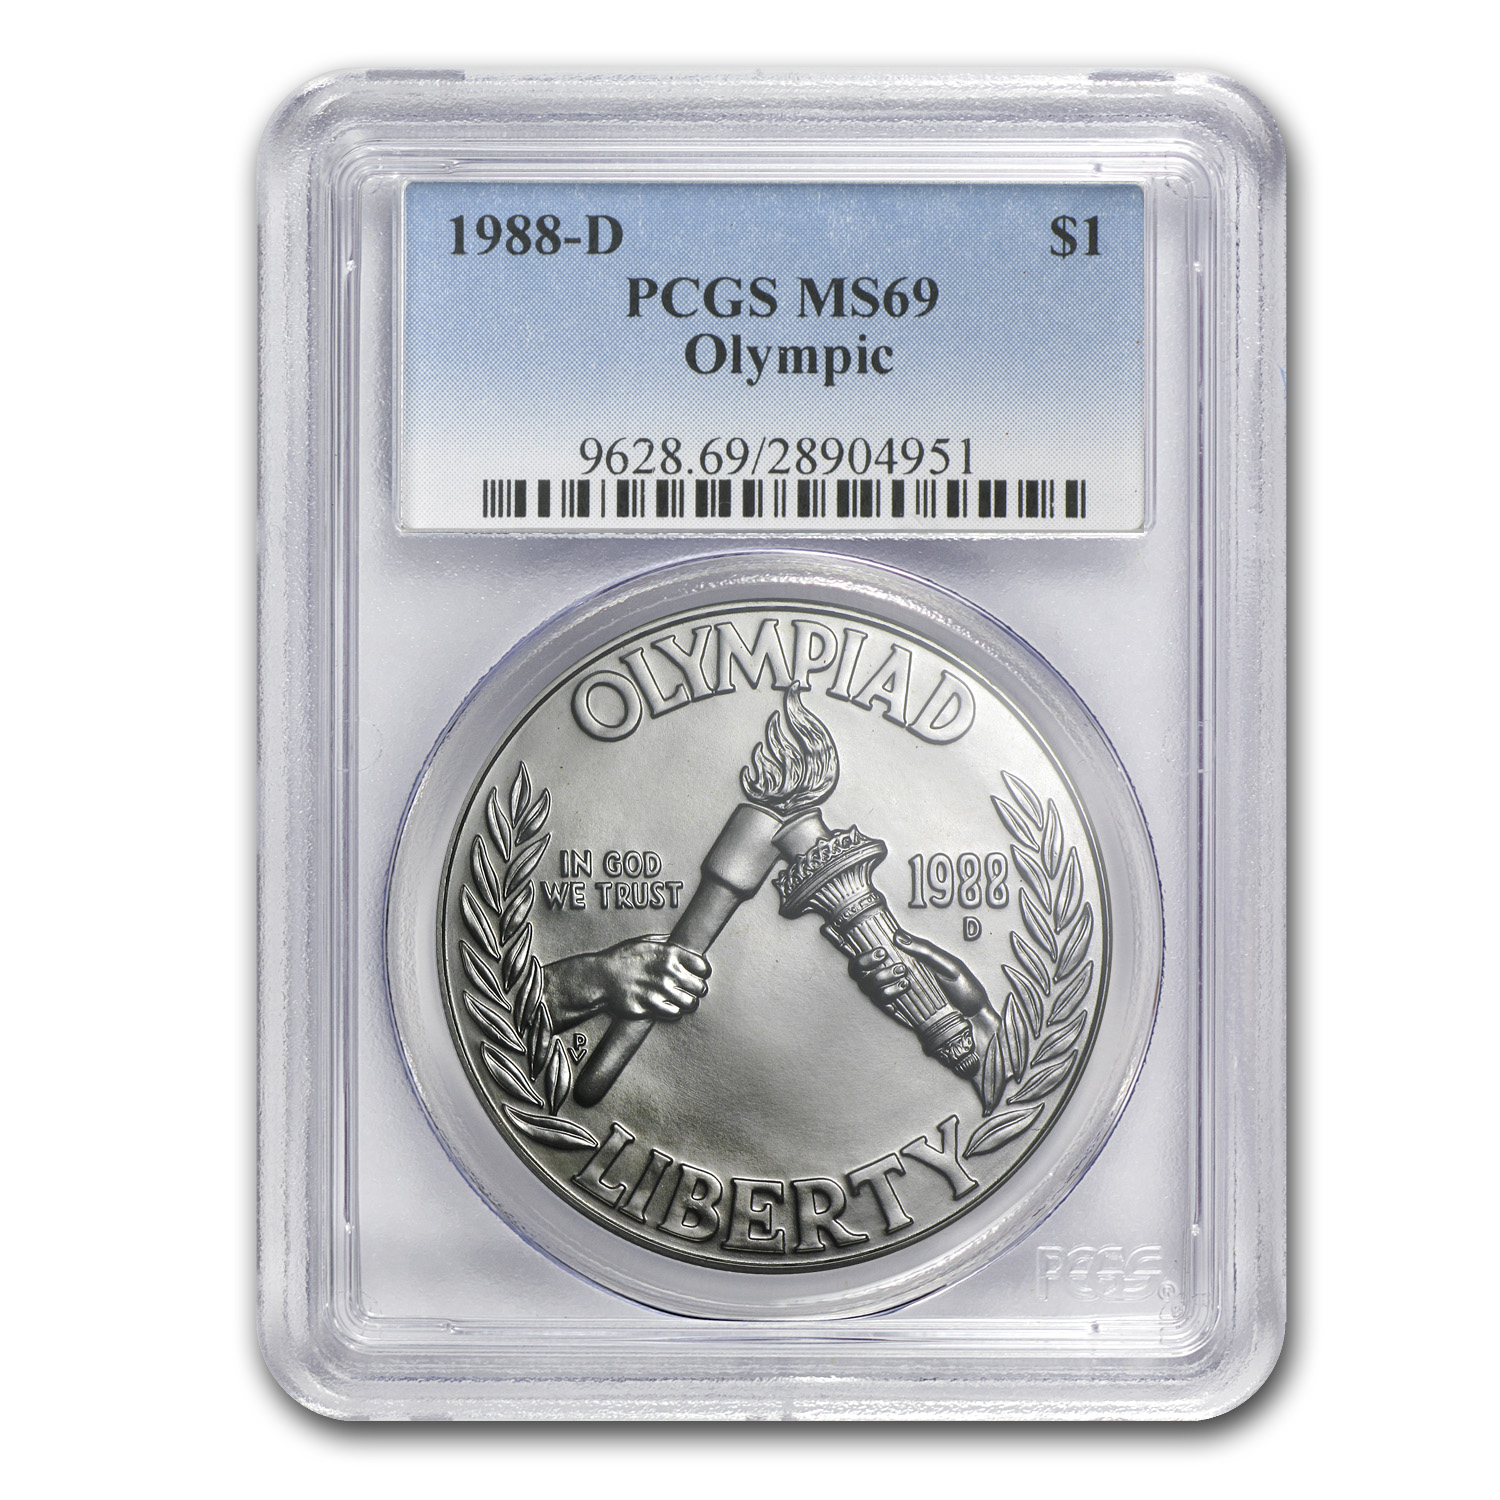 1988-D Olympic $1 Silver Commemorative MS-69 PCGS